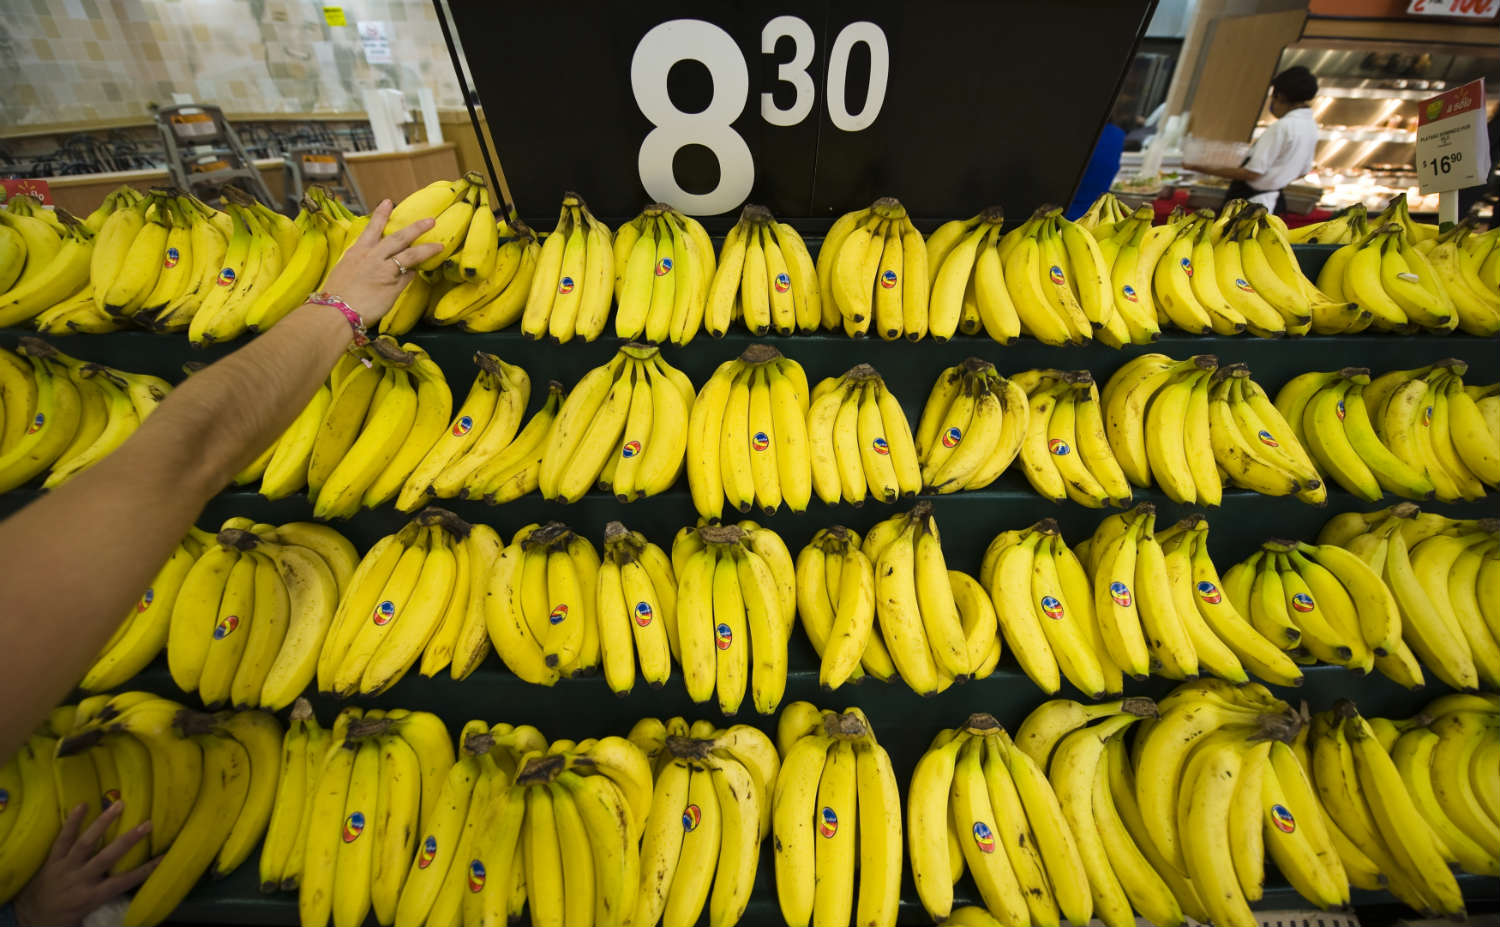 Bananas are increasingly popular around the world, but they're vulnerable to a new disease